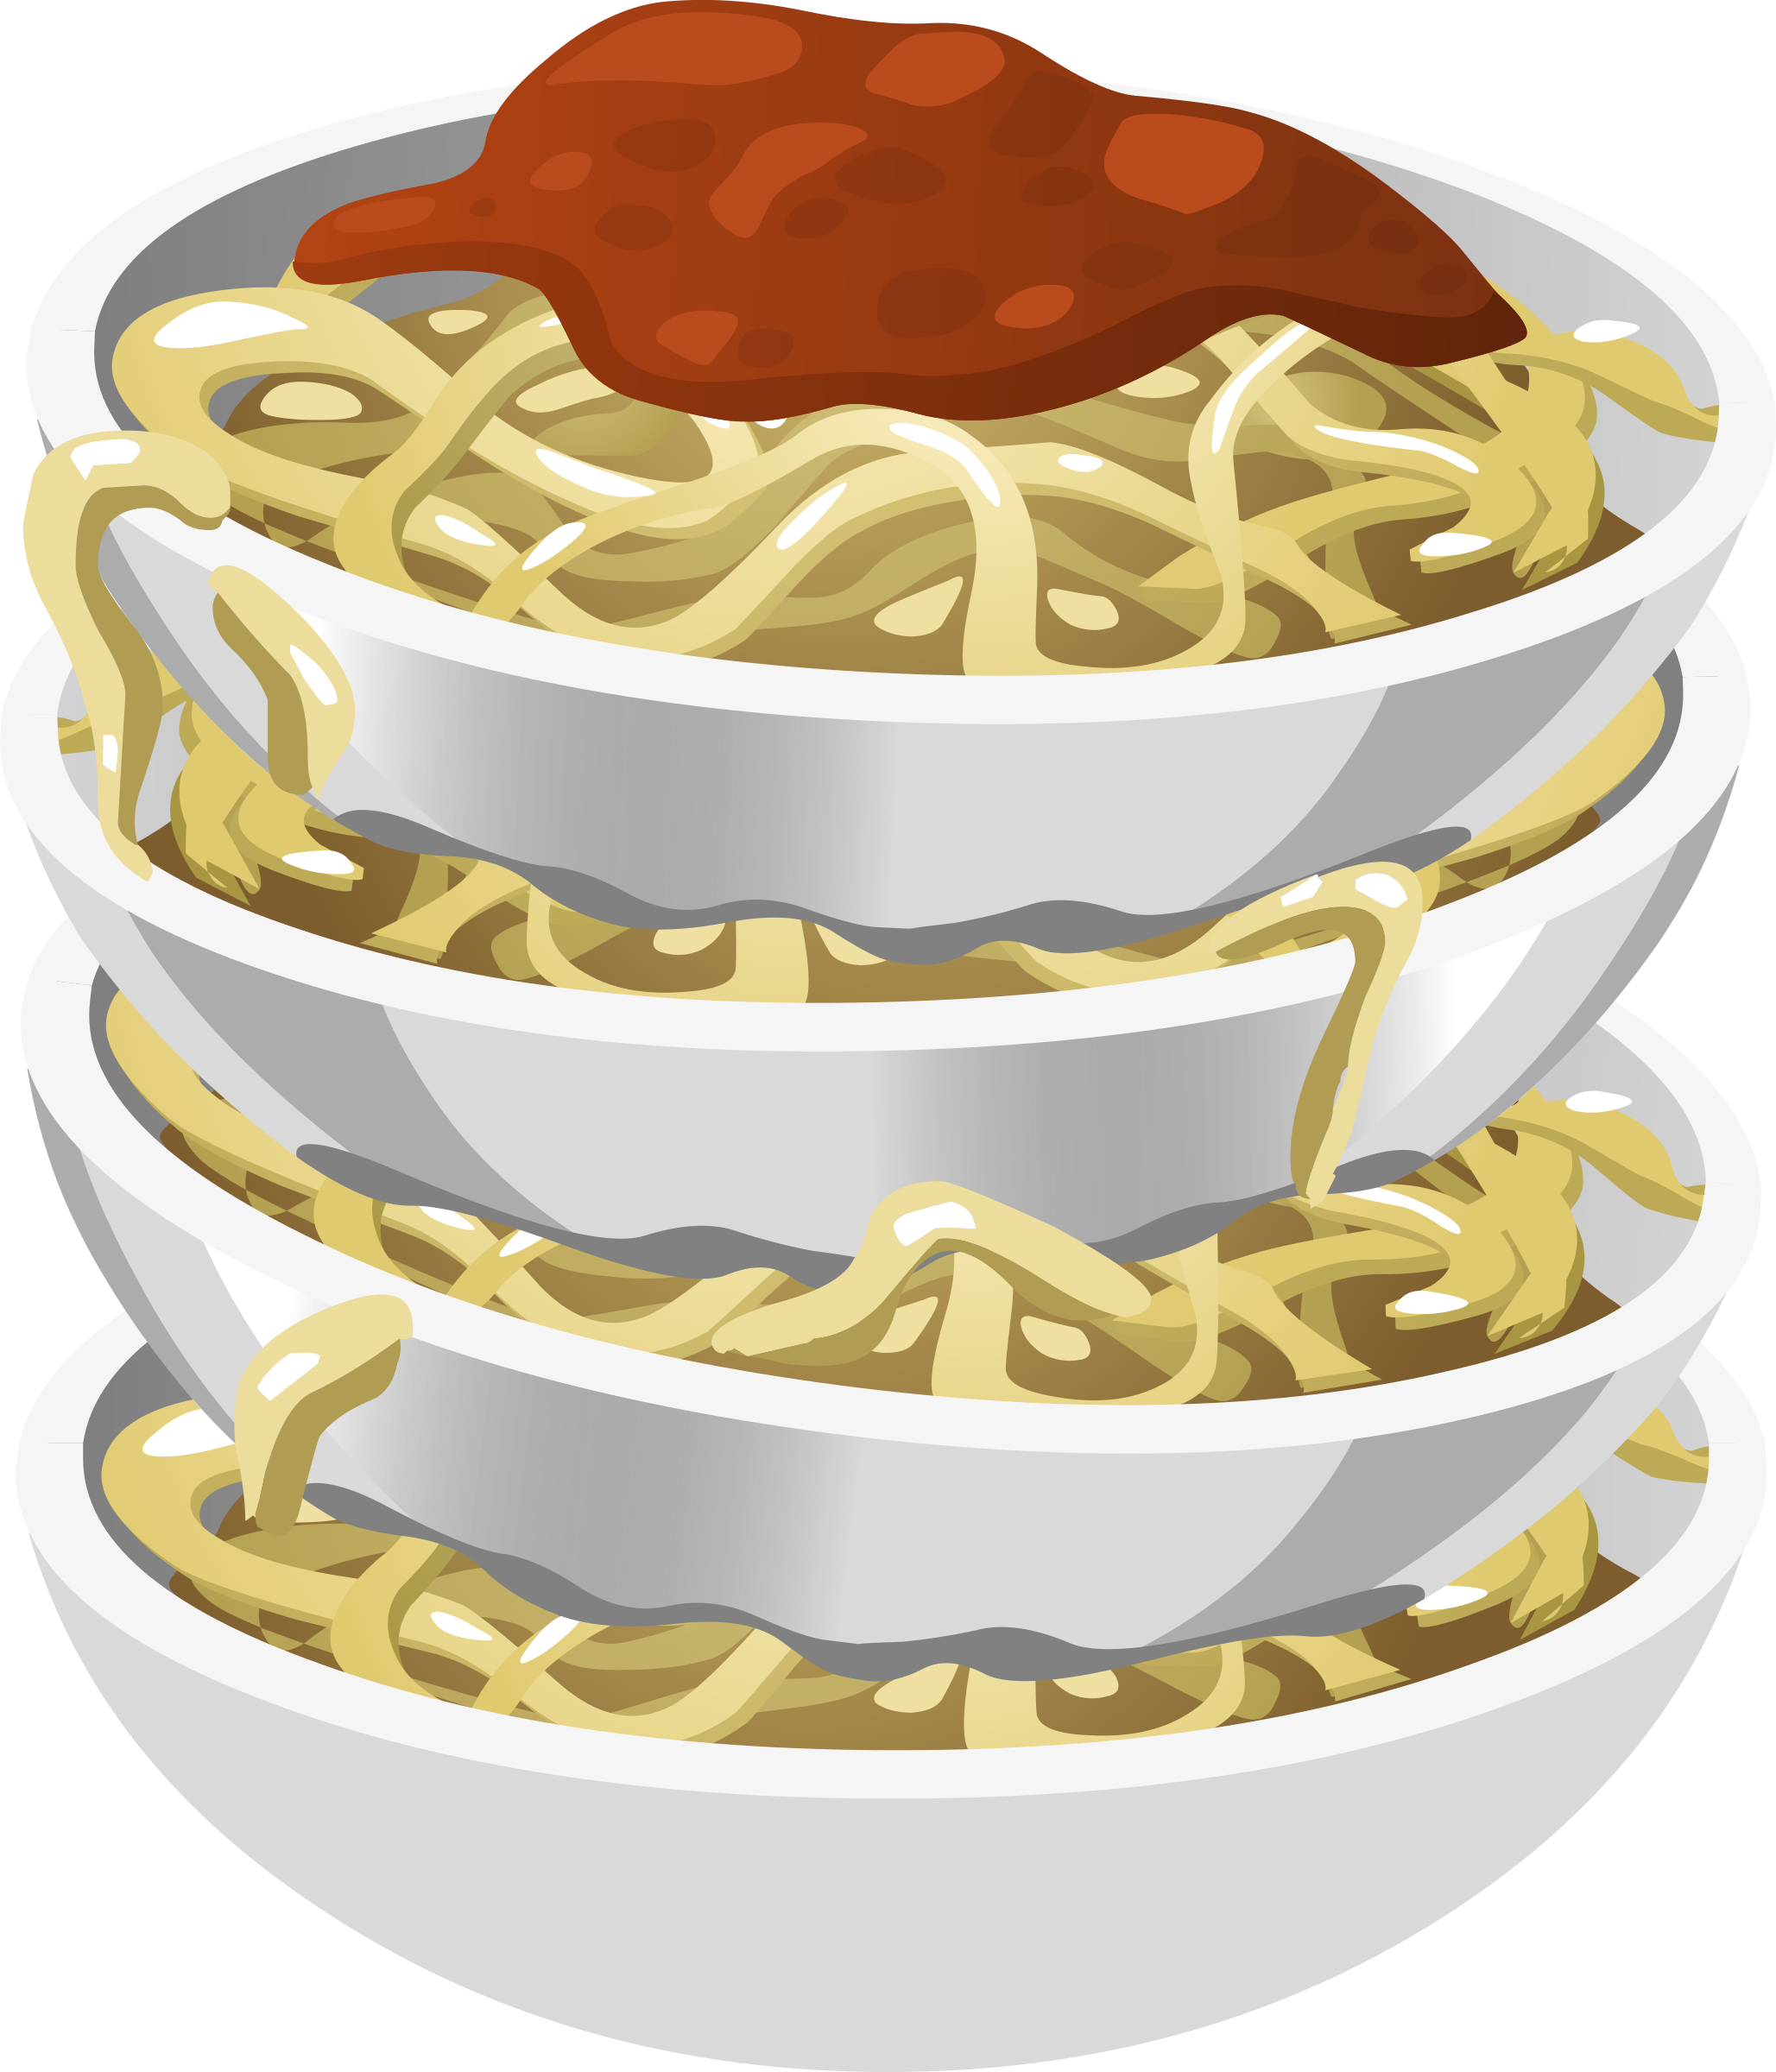 Food Tasty Pasta Icons PNG